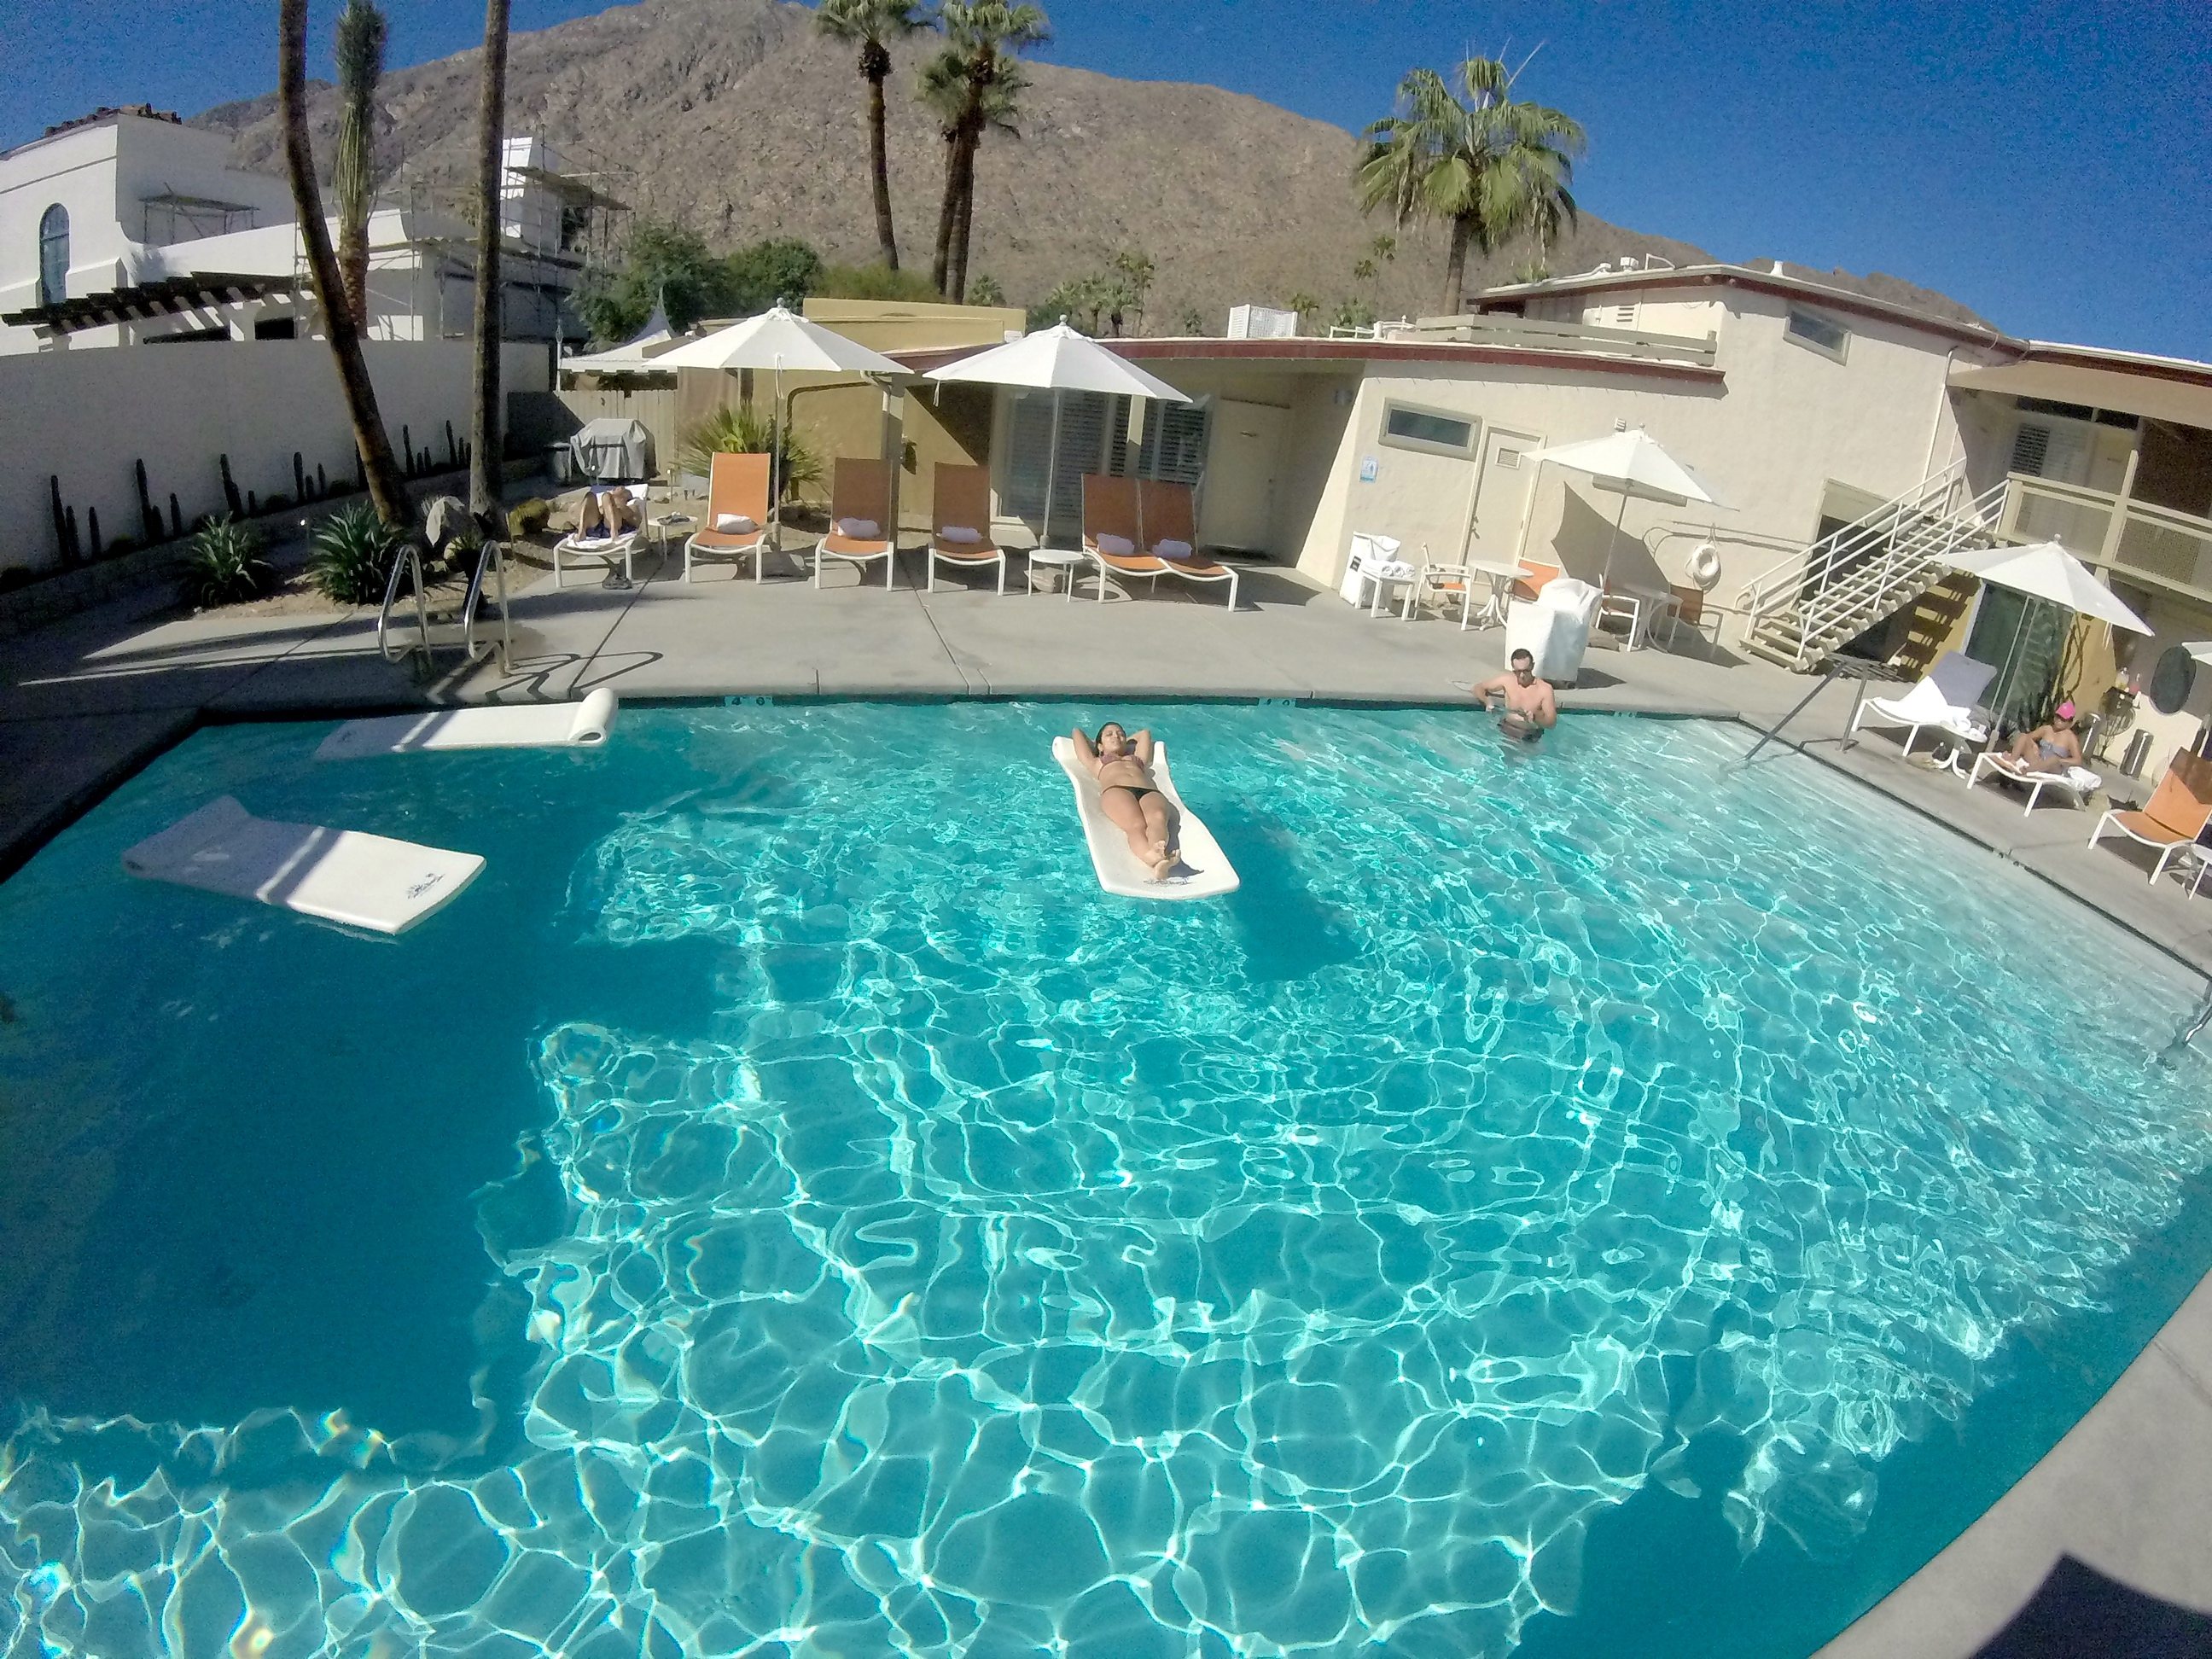 del marcos palm springs